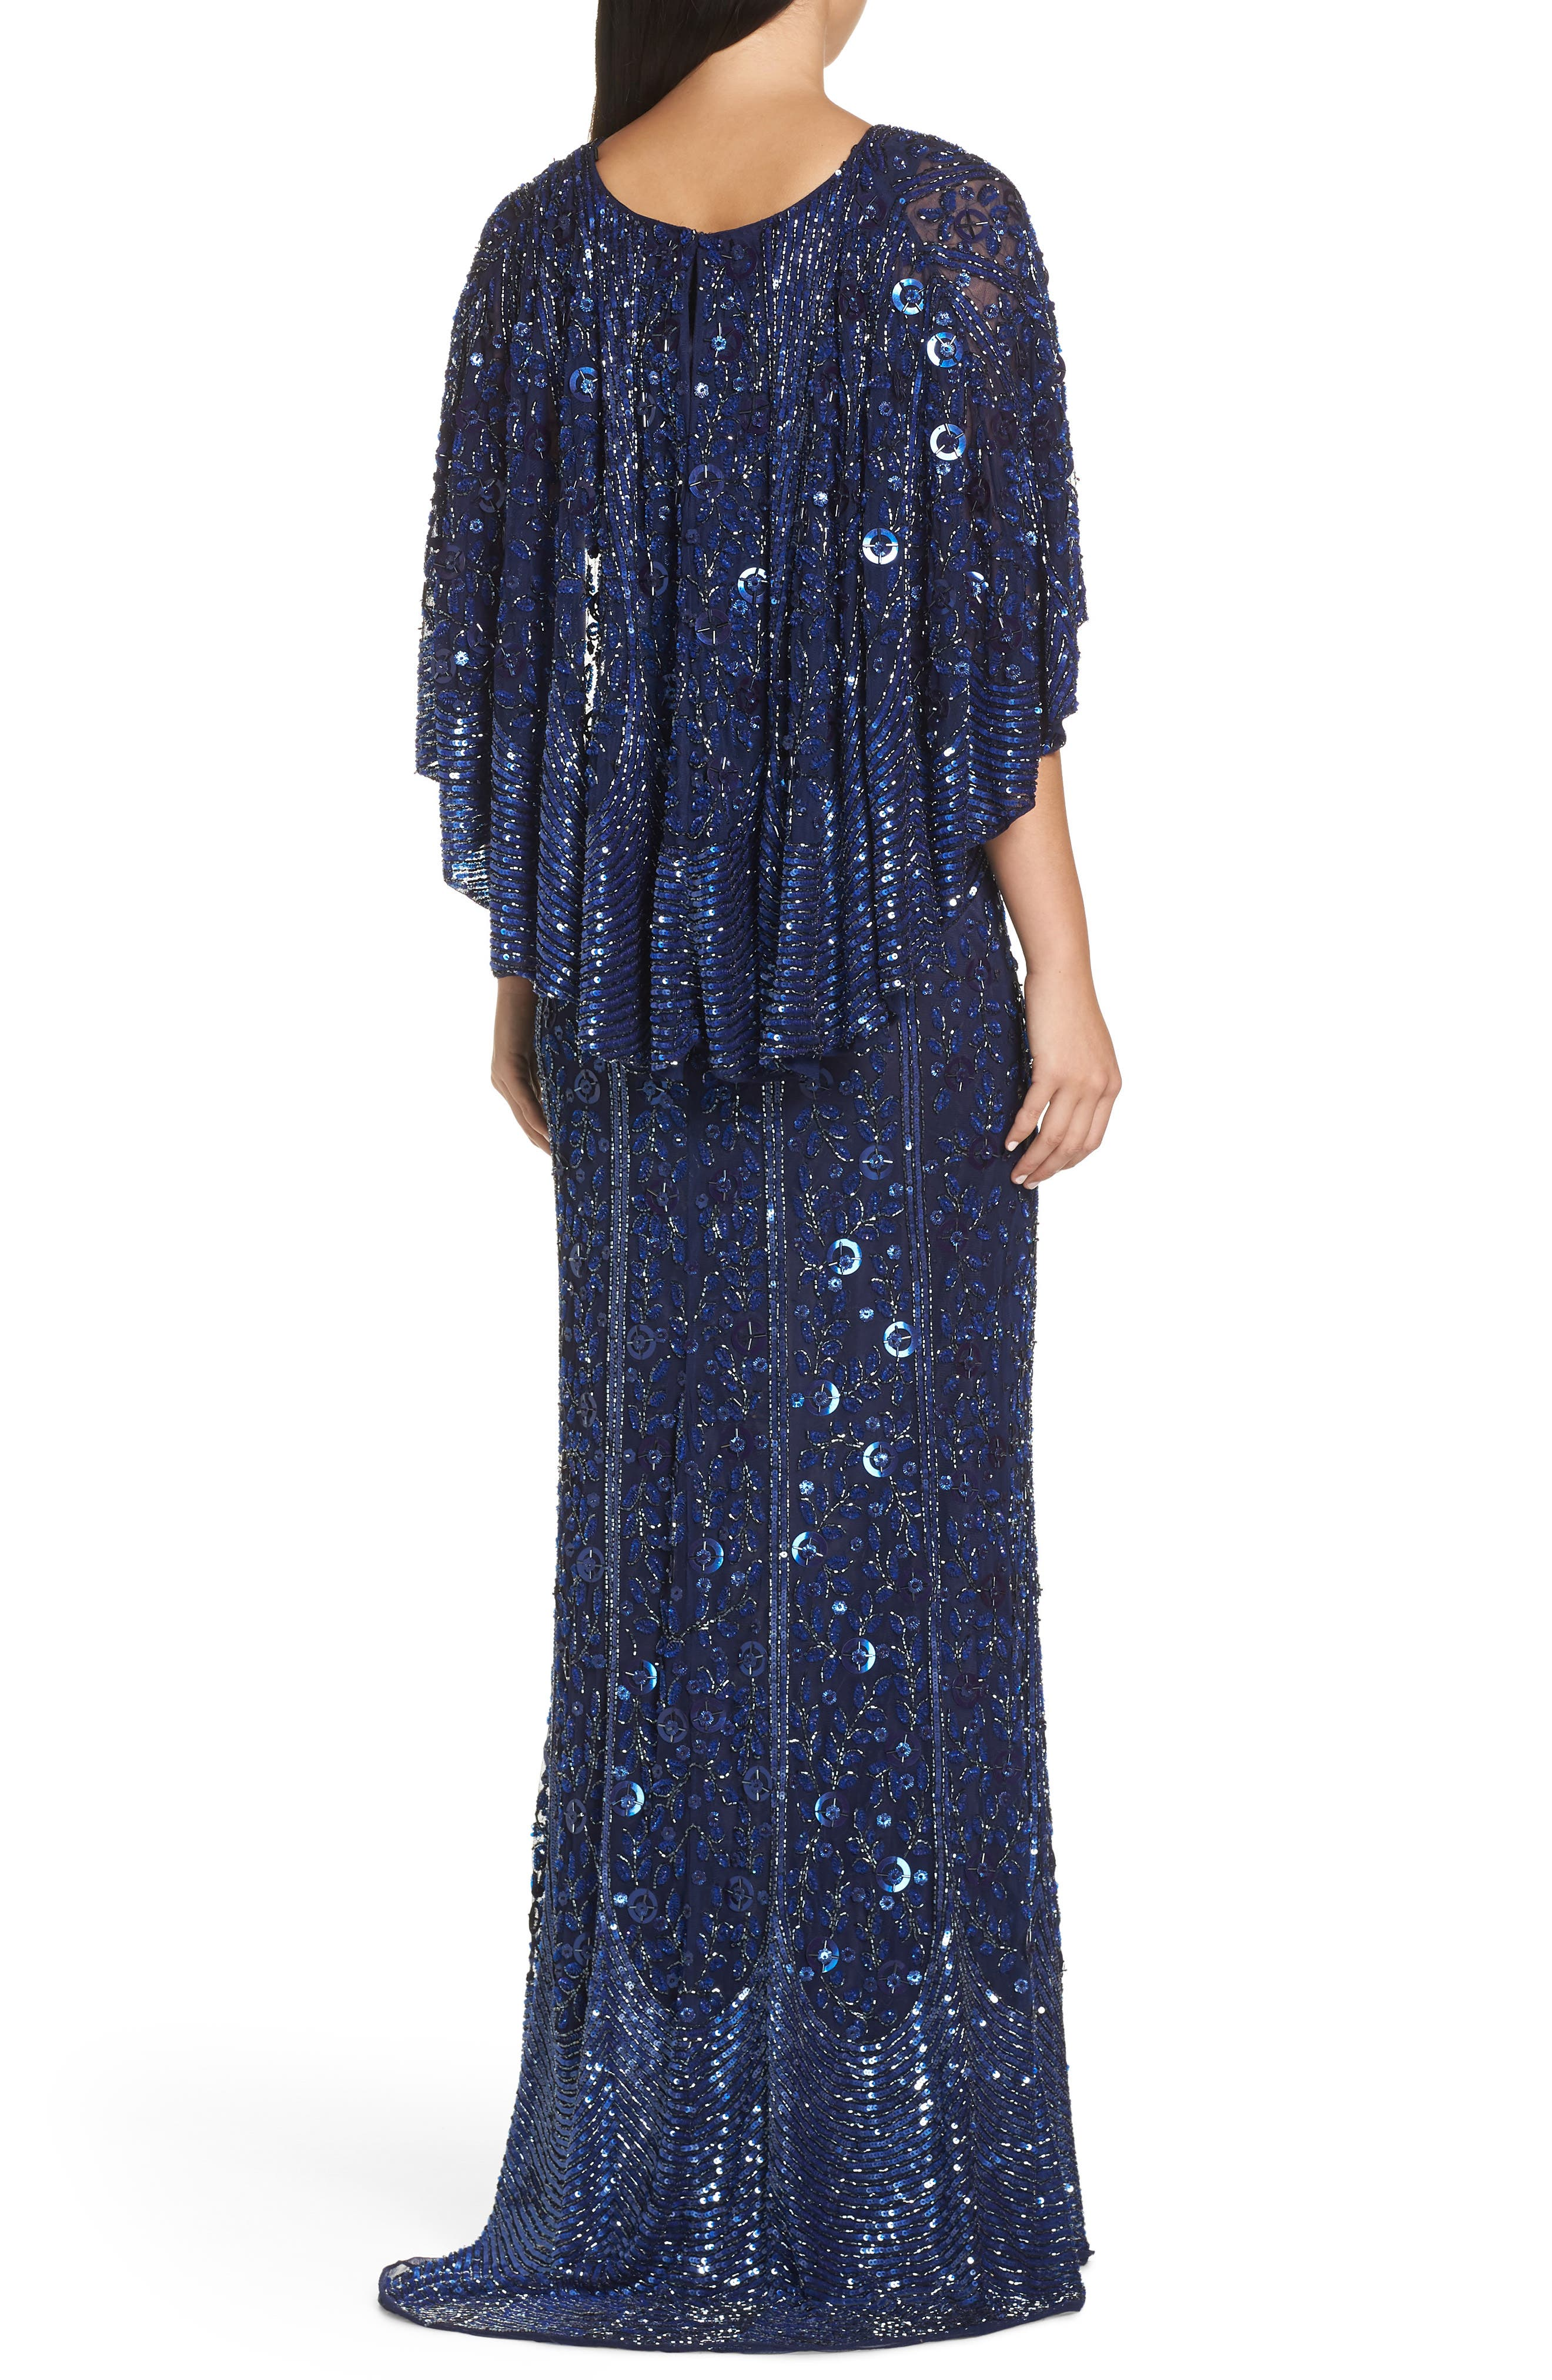 MAC DUGGAL, Sequin Cape Sleeve Evening Dress, Alternate thumbnail 2, color, MIDNIGHT